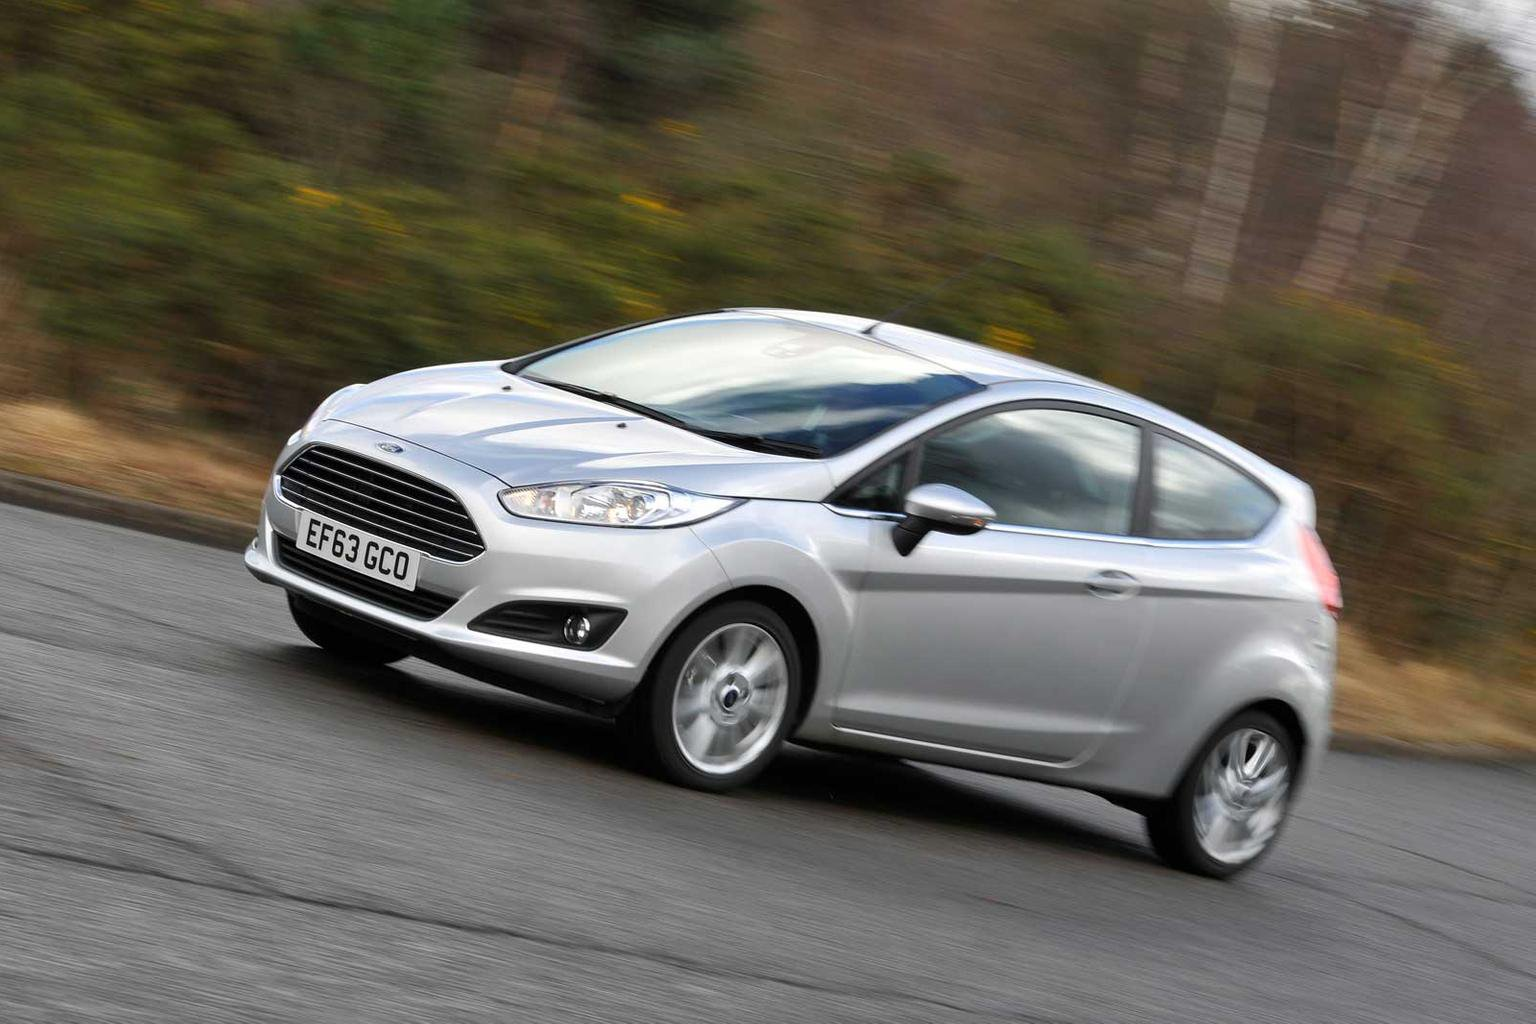 2014 Ford Fiesta 1.0T Ecoboost Powershift review